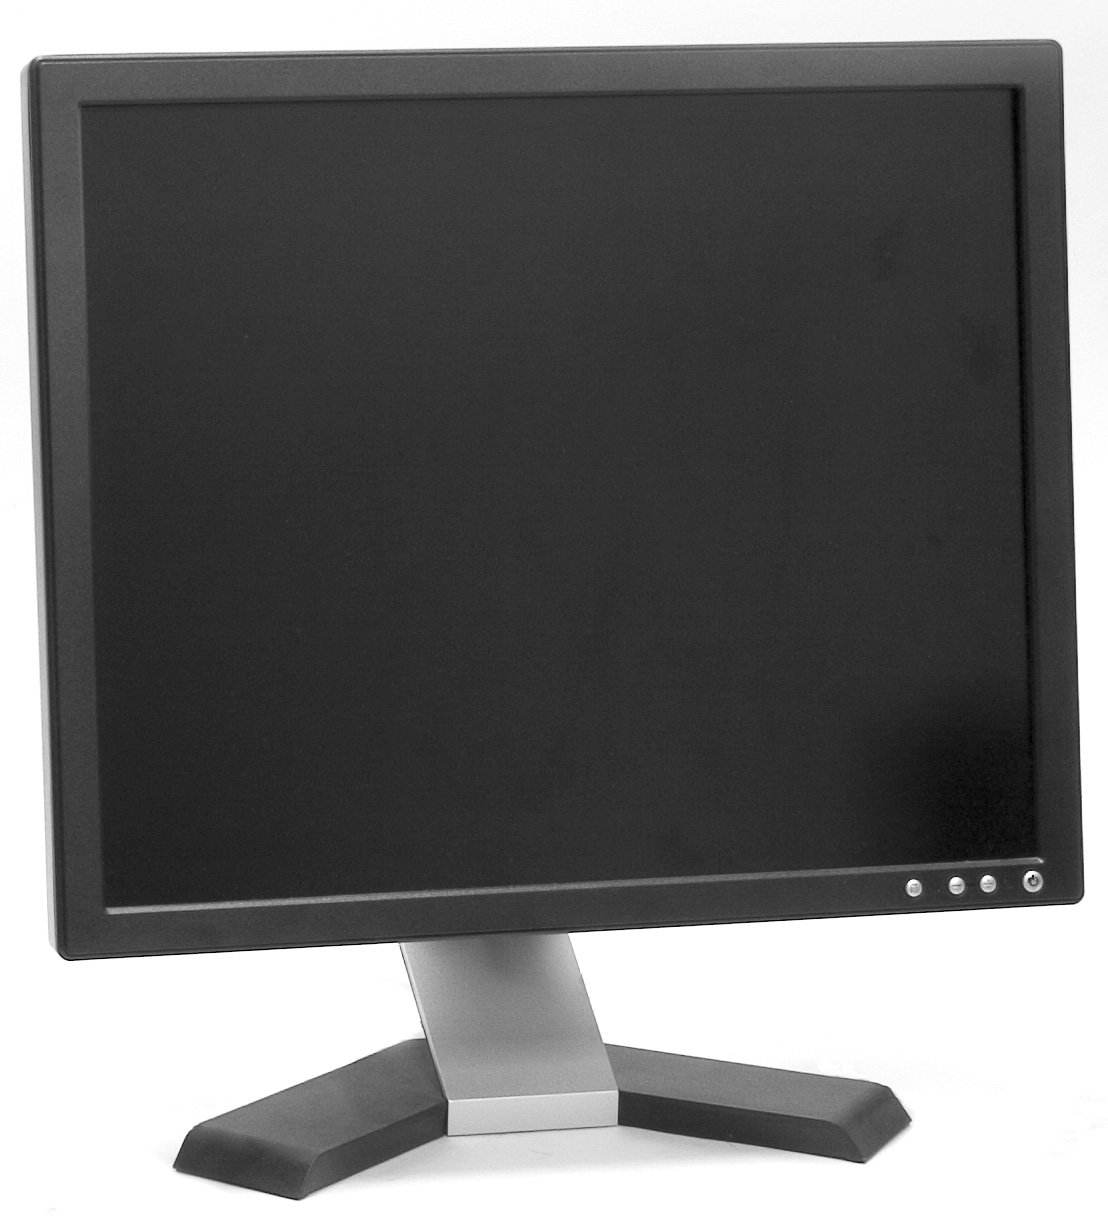 monitors is